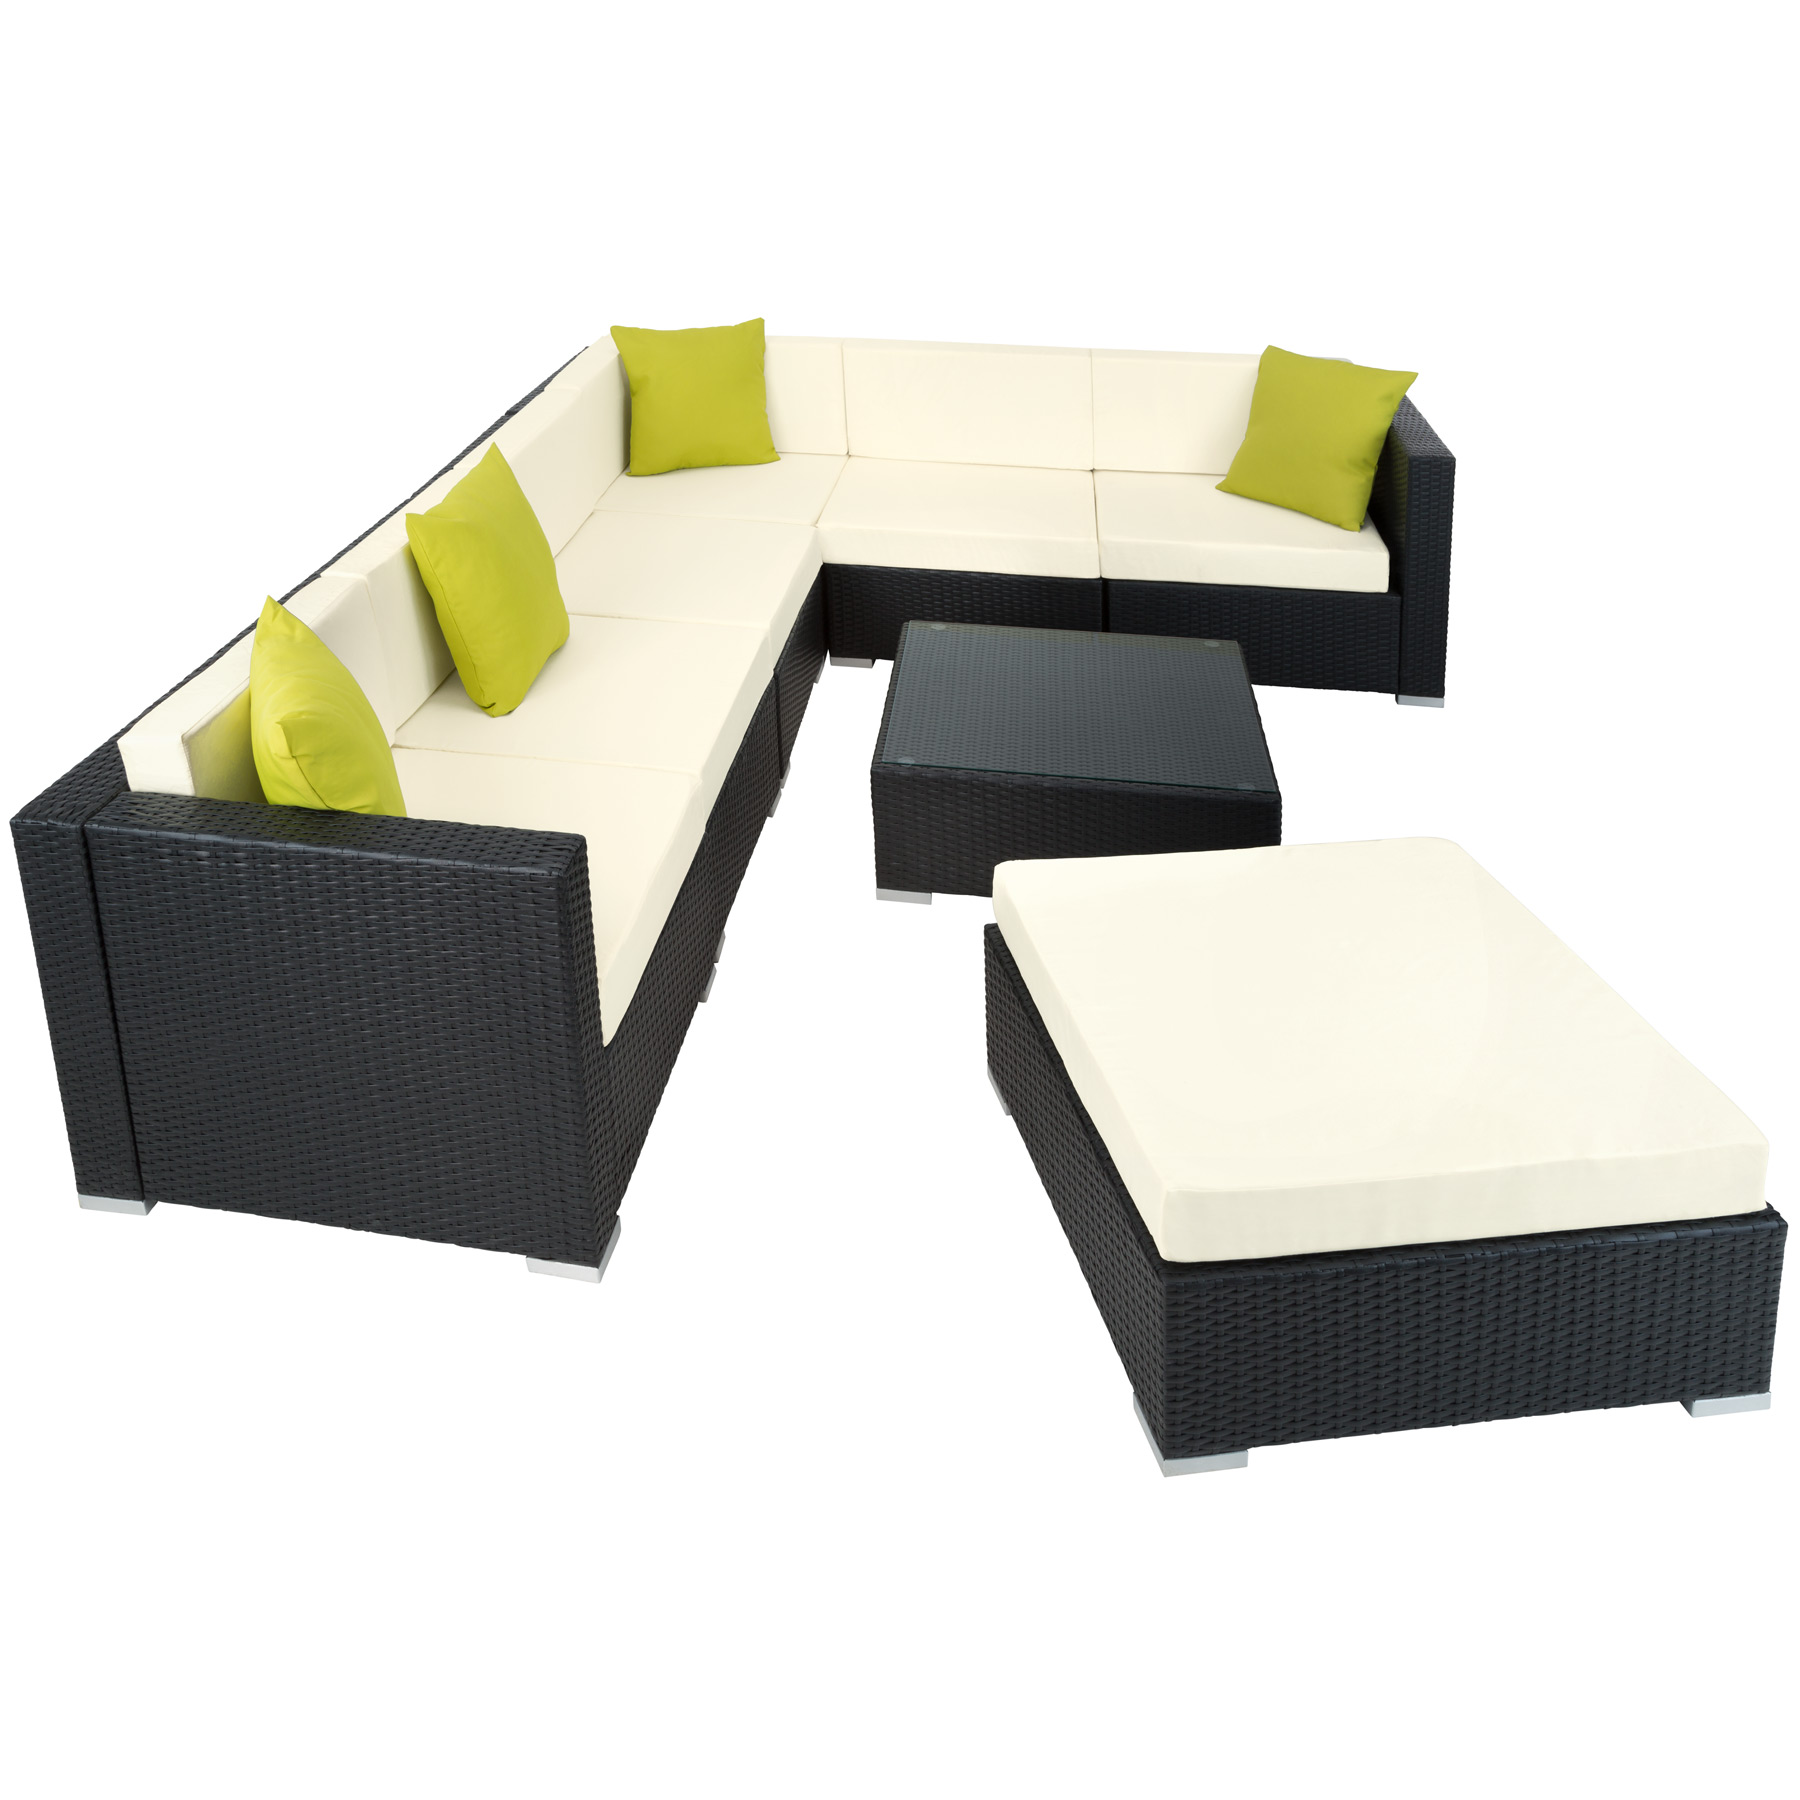 Ensemble Salon De Jardin Aluminium R Sine Tress E Poly Rotin Table Sofa Noir Ebay